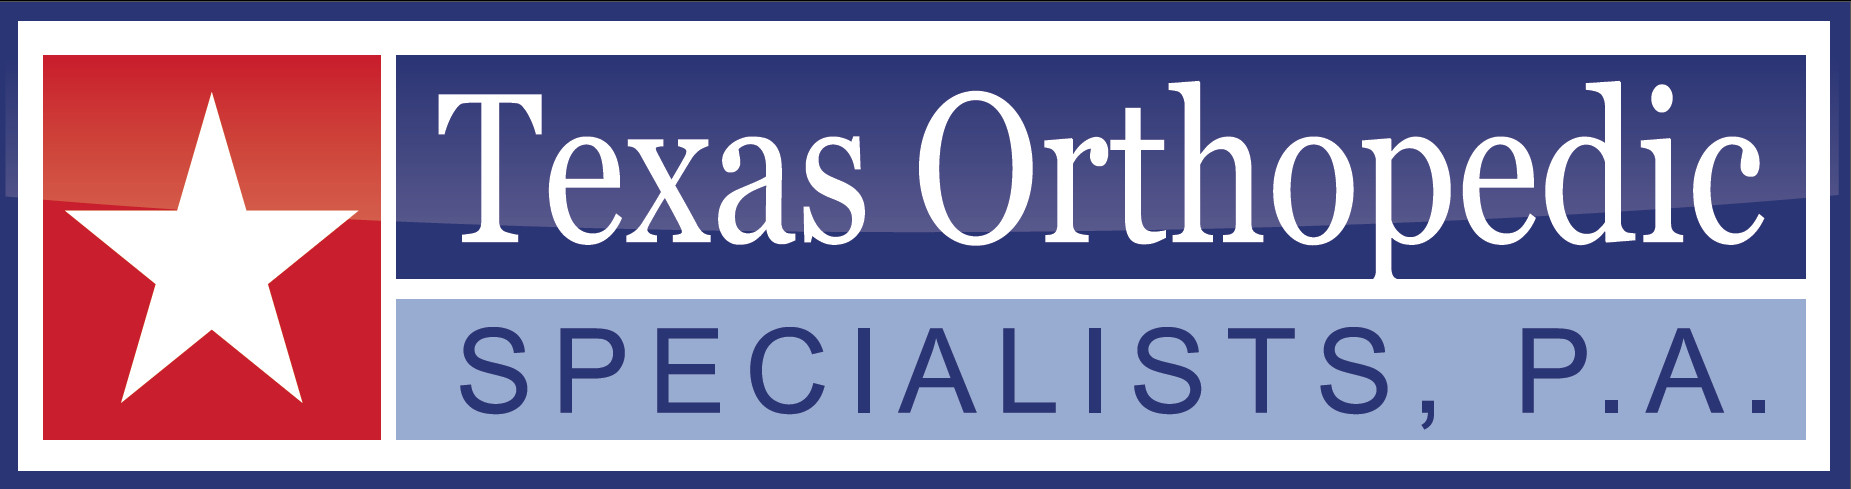 Texas Orthopedics Specialists, P.A.